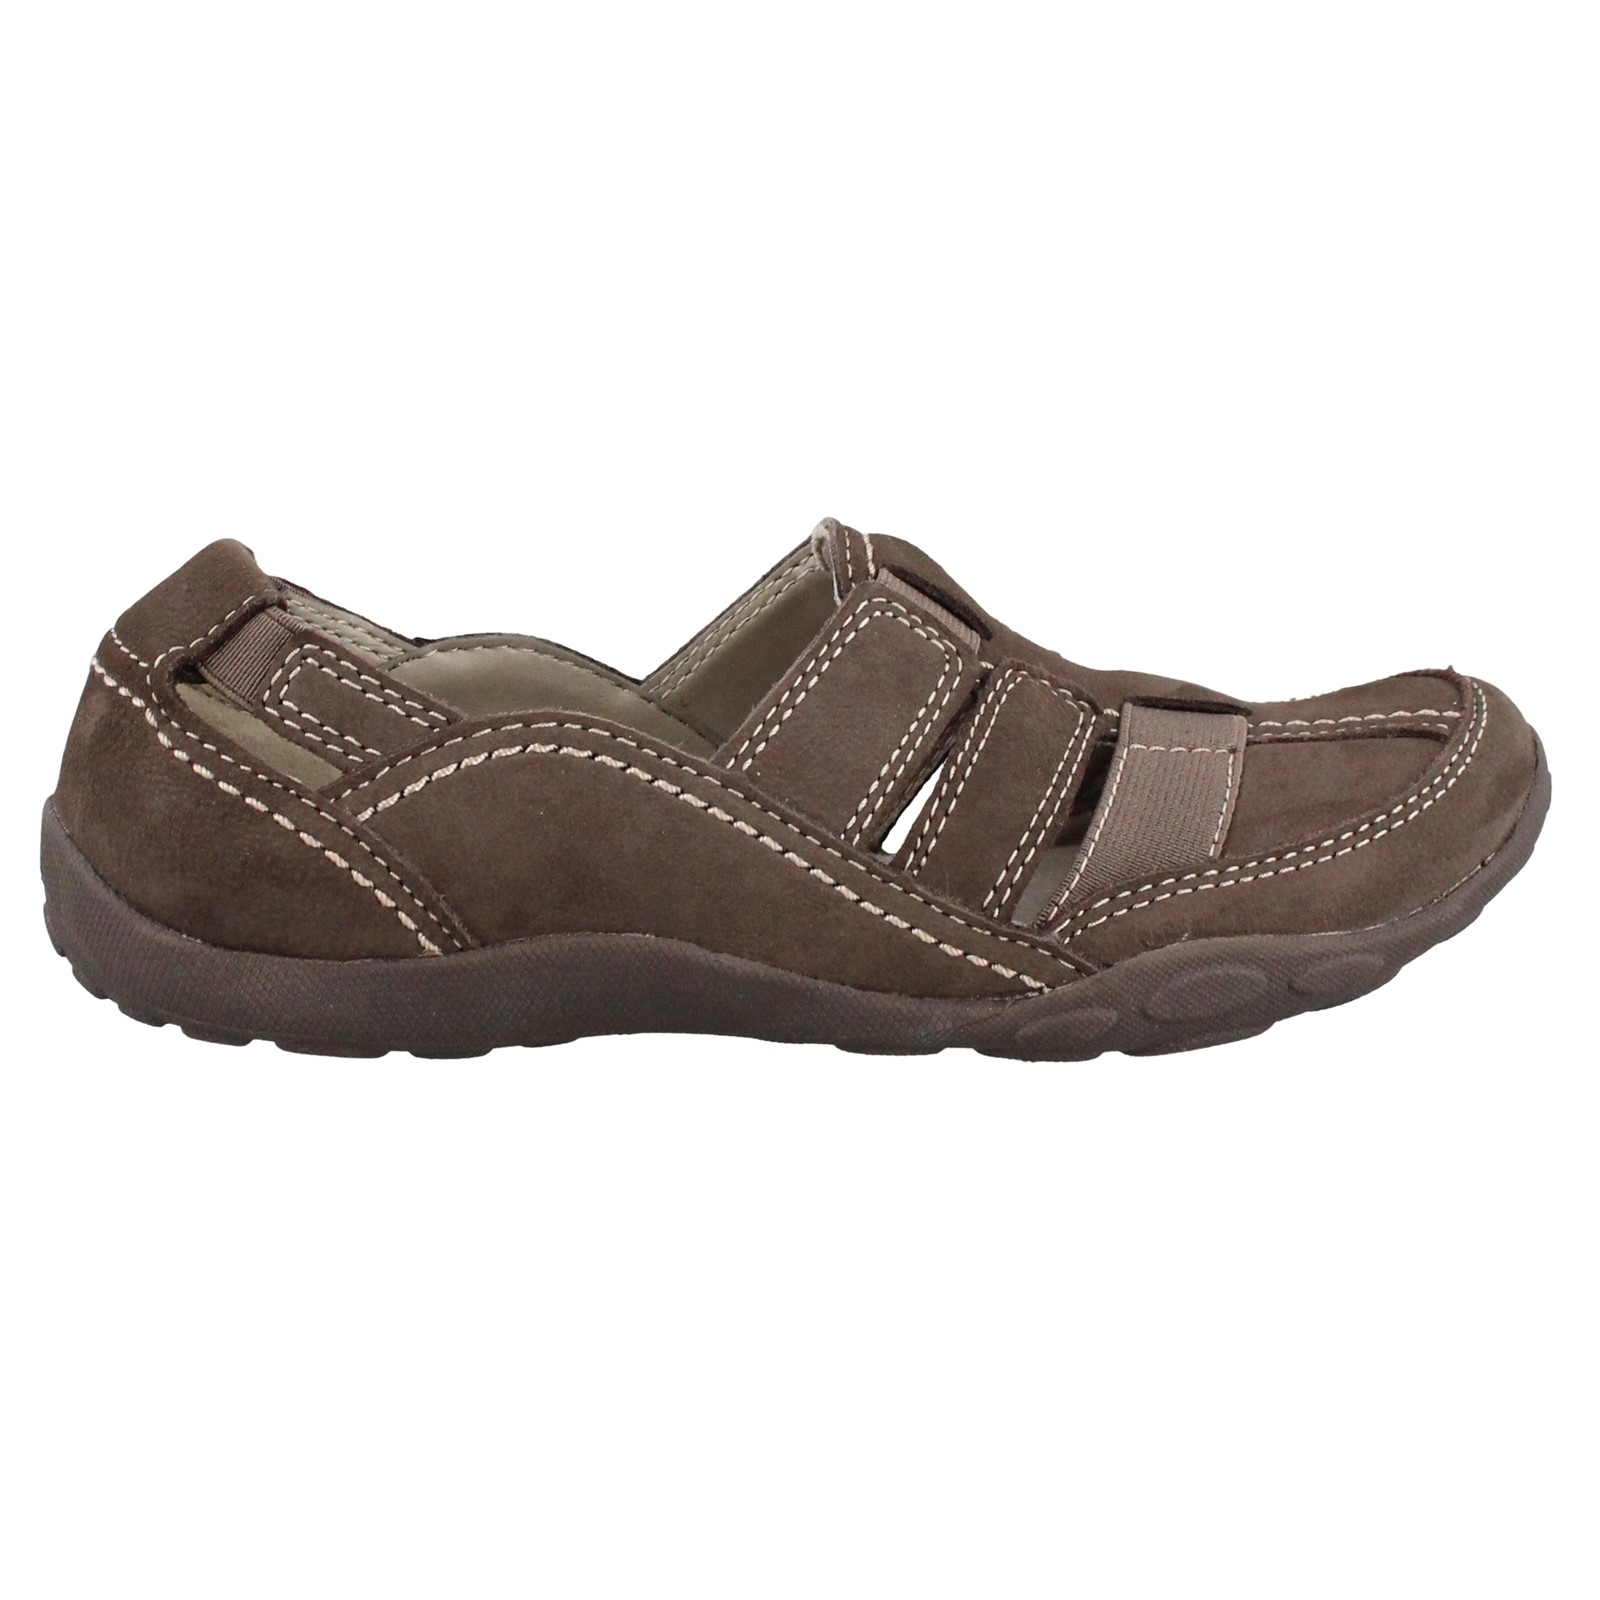 Women's Clarks, Haley Stork